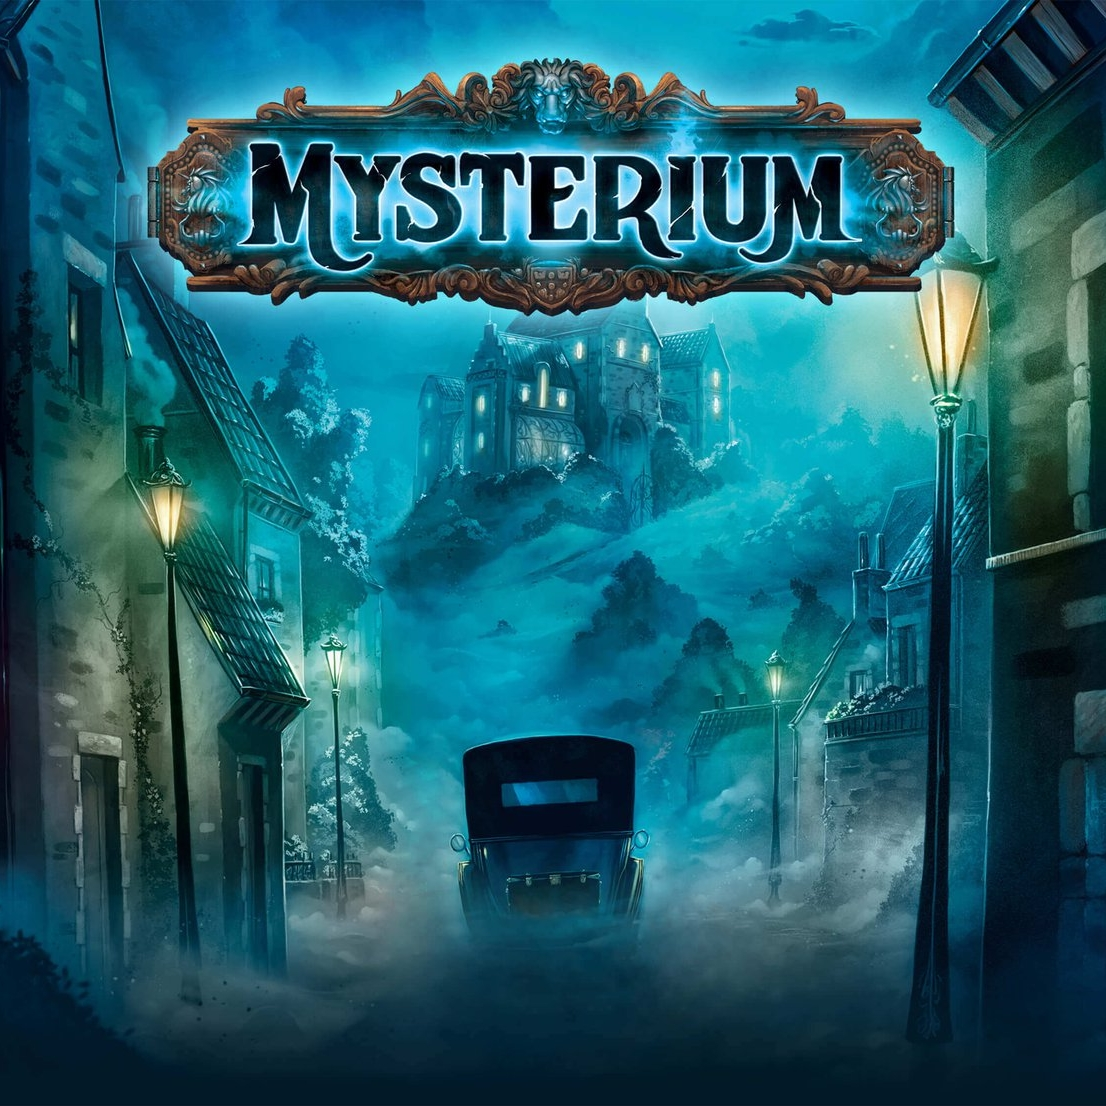 Mysterium - Written ReviewVideo - Cardboard Cutouts: 3 Spook-tacular Social Games to Play This HalloweenVideo - Rook & Record - Mysterium / Tajemnicze Domostwo